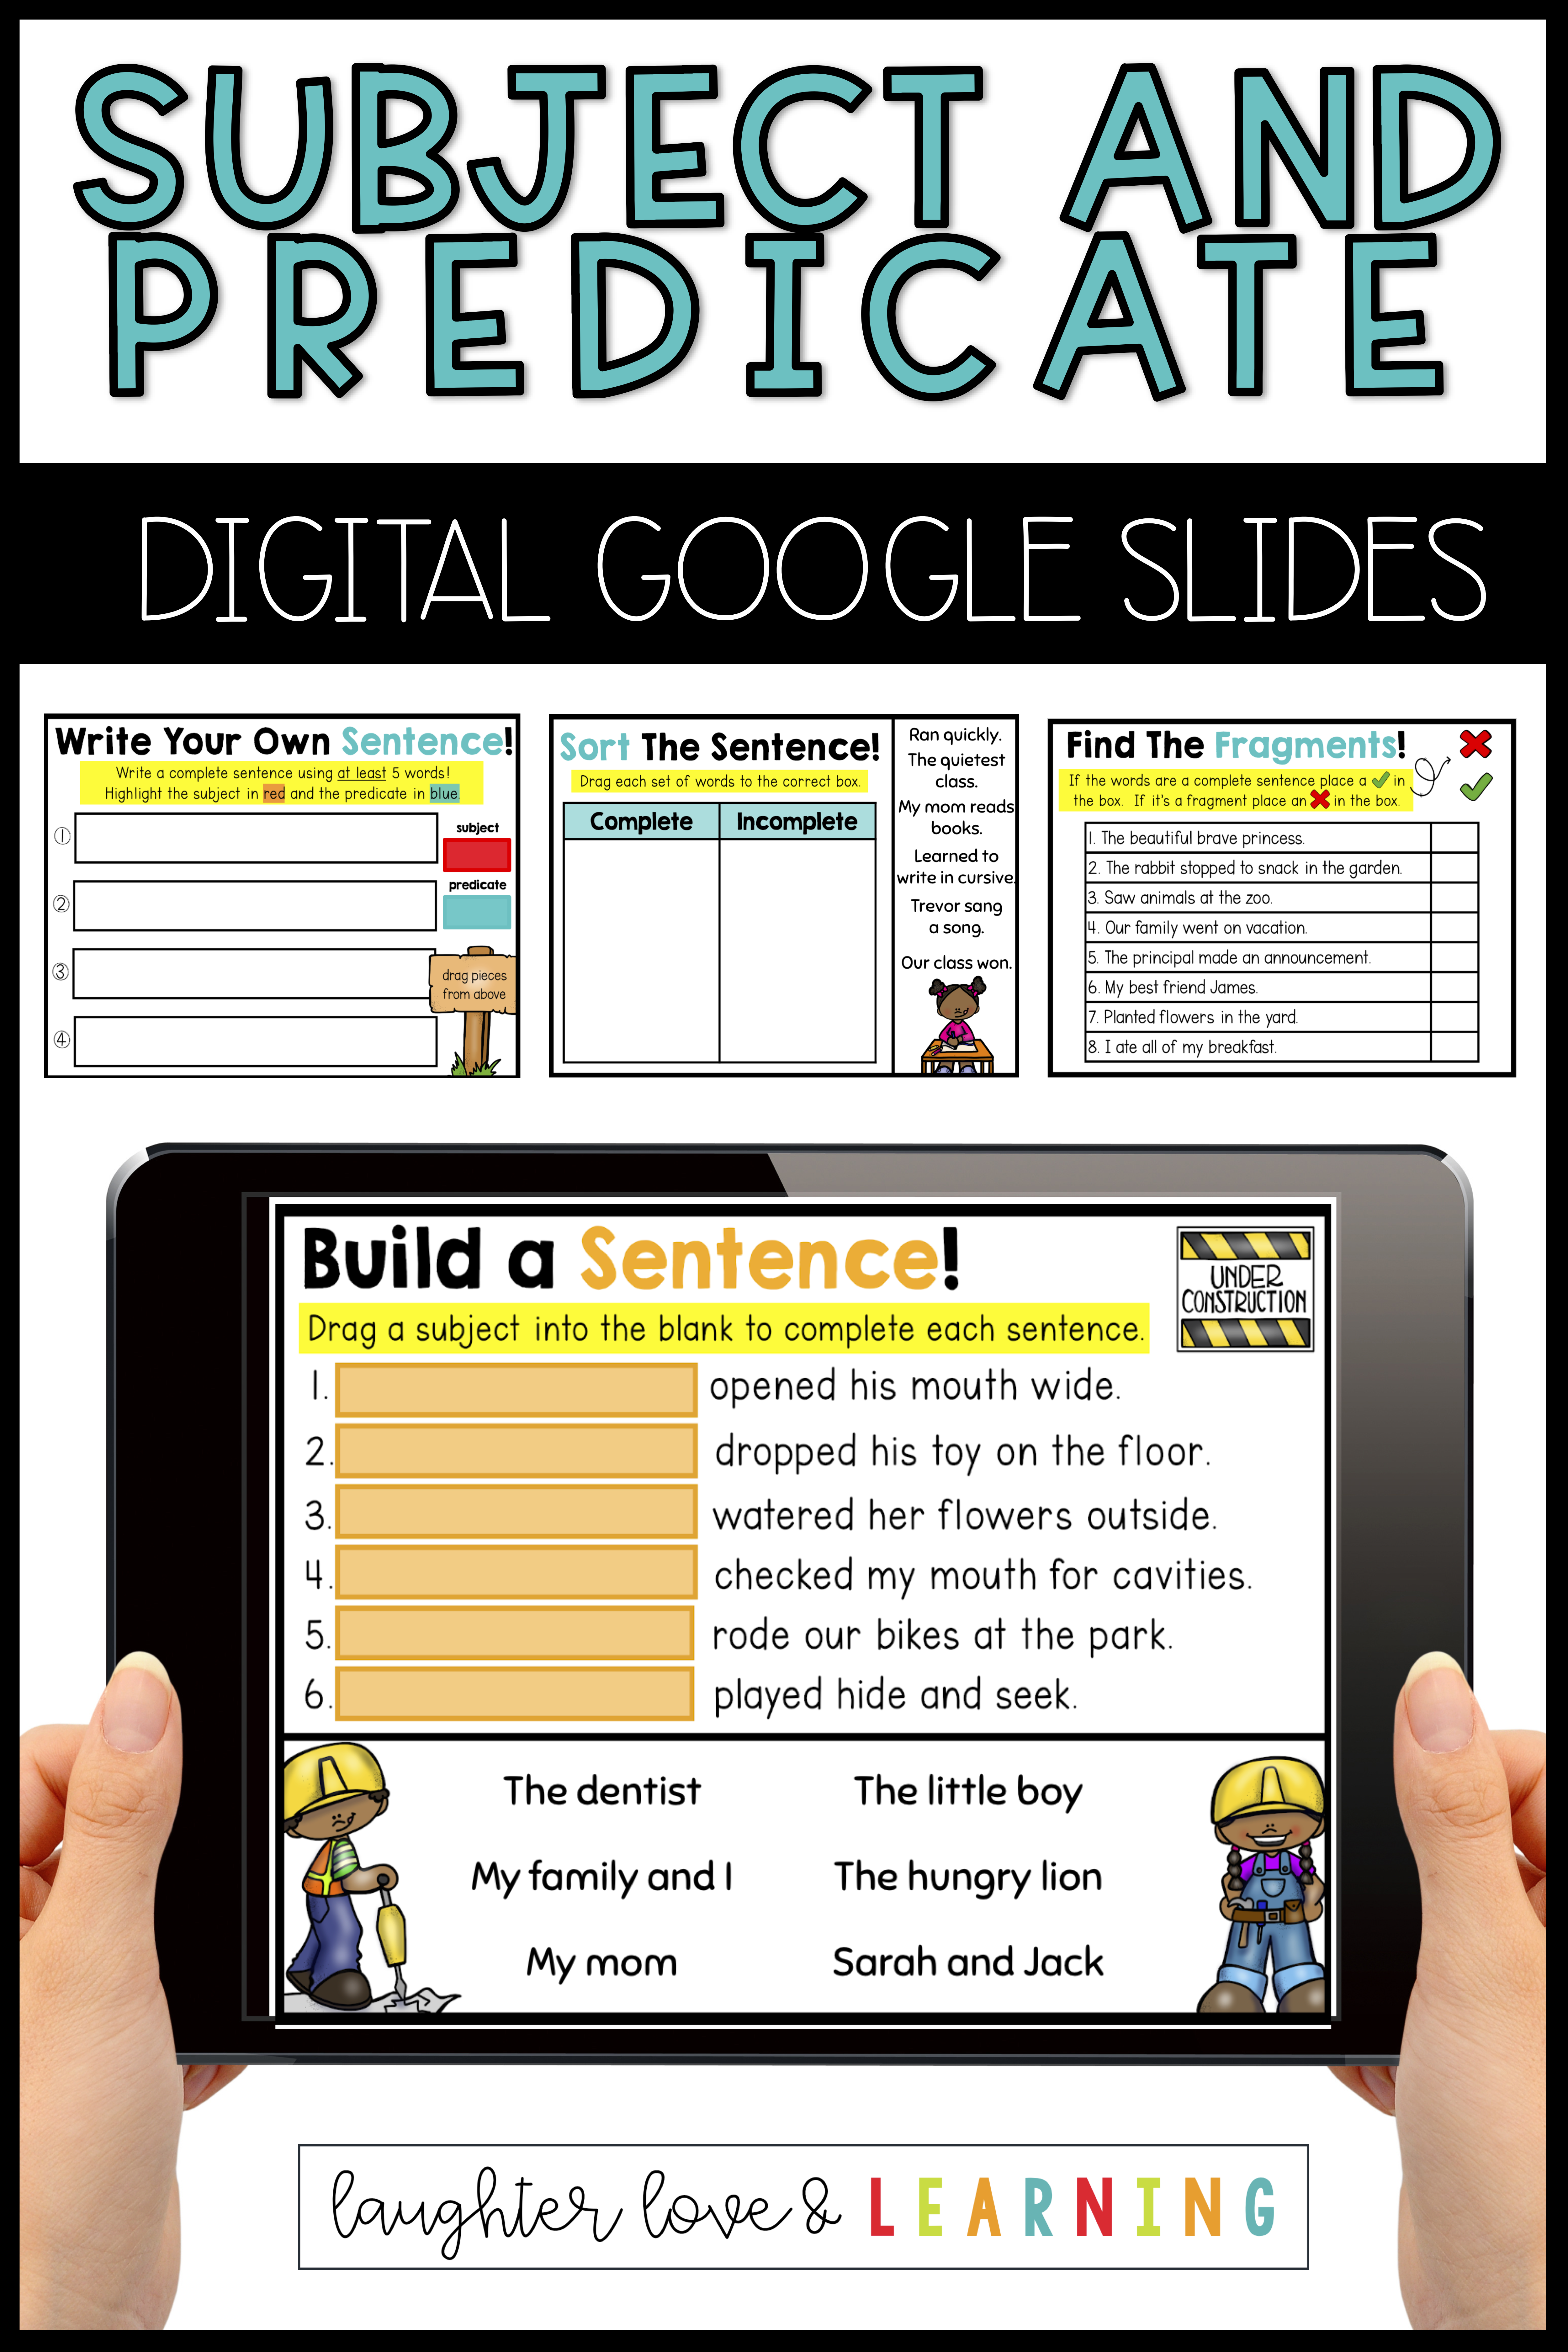 hight resolution of Subject and Predicate Practice: Digital Google Slides   Subject and  predicate